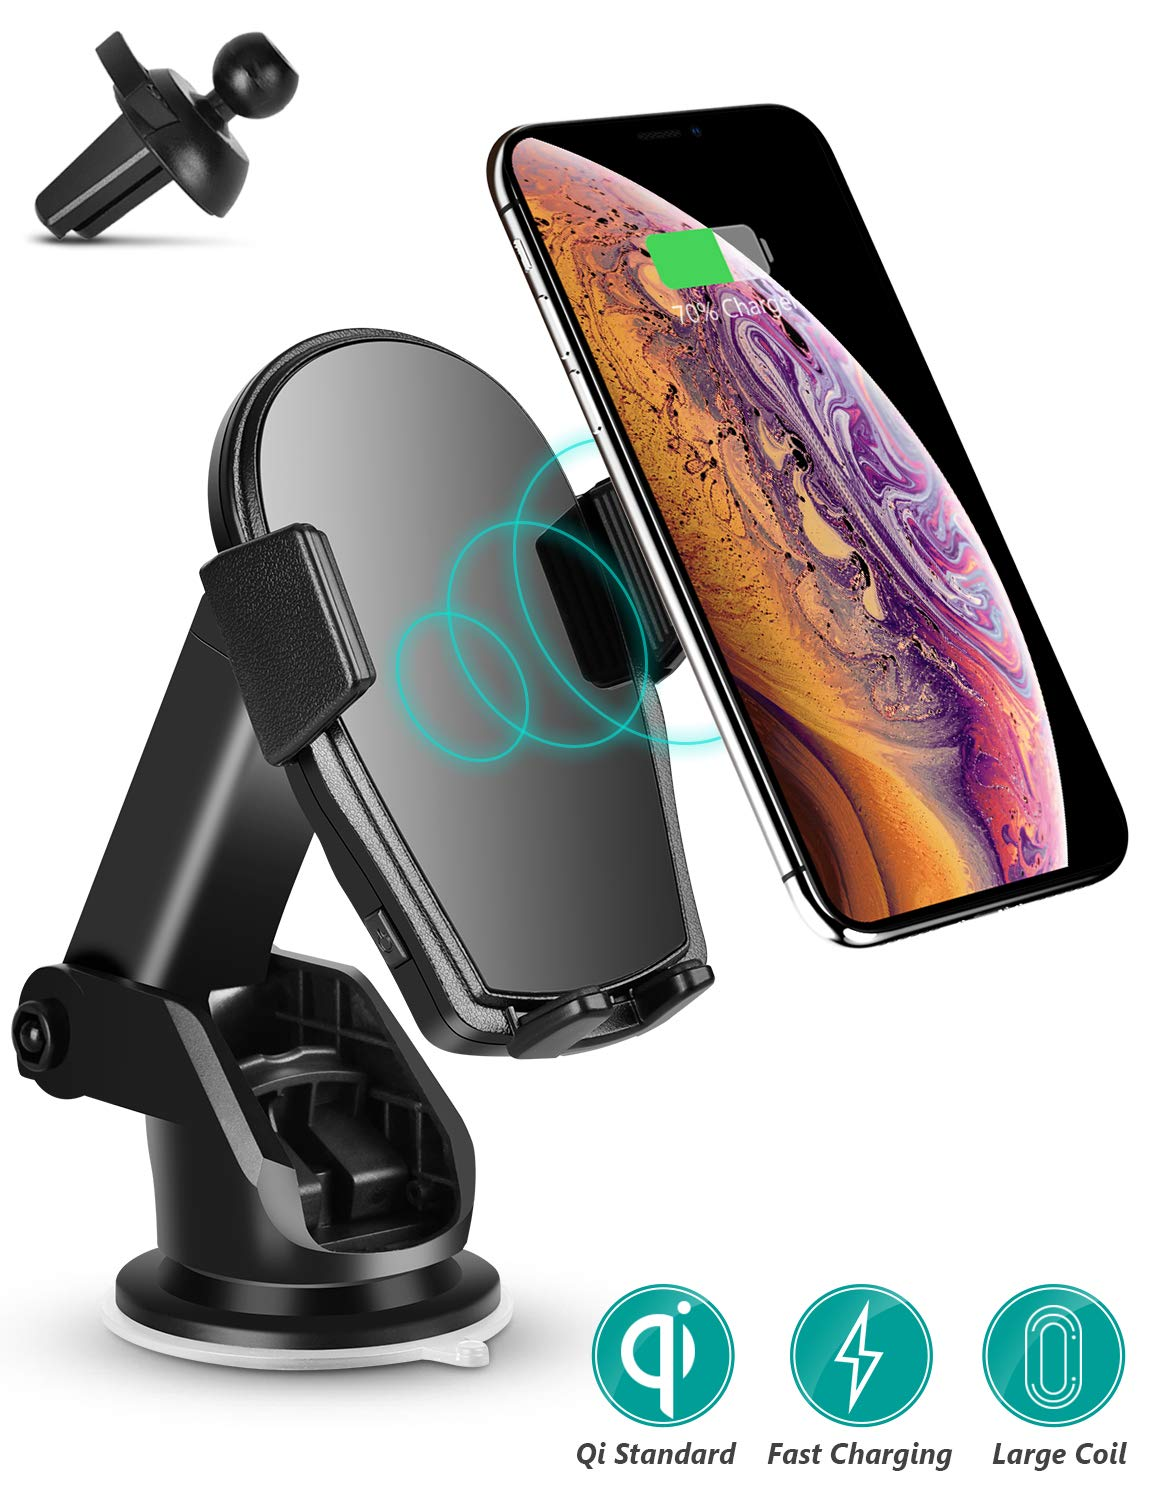 Wireless Car Charger - Charvoxrt Auto Clamping Car Charger Mount with 7.5W/10W QI Fast Charging - Air Vent Windshield Dashboard Phone Holder for iPhone Xs MAX/XR/X/8+, Samsung Galaxy S10+/S9+/S8+ by Charvoxrt